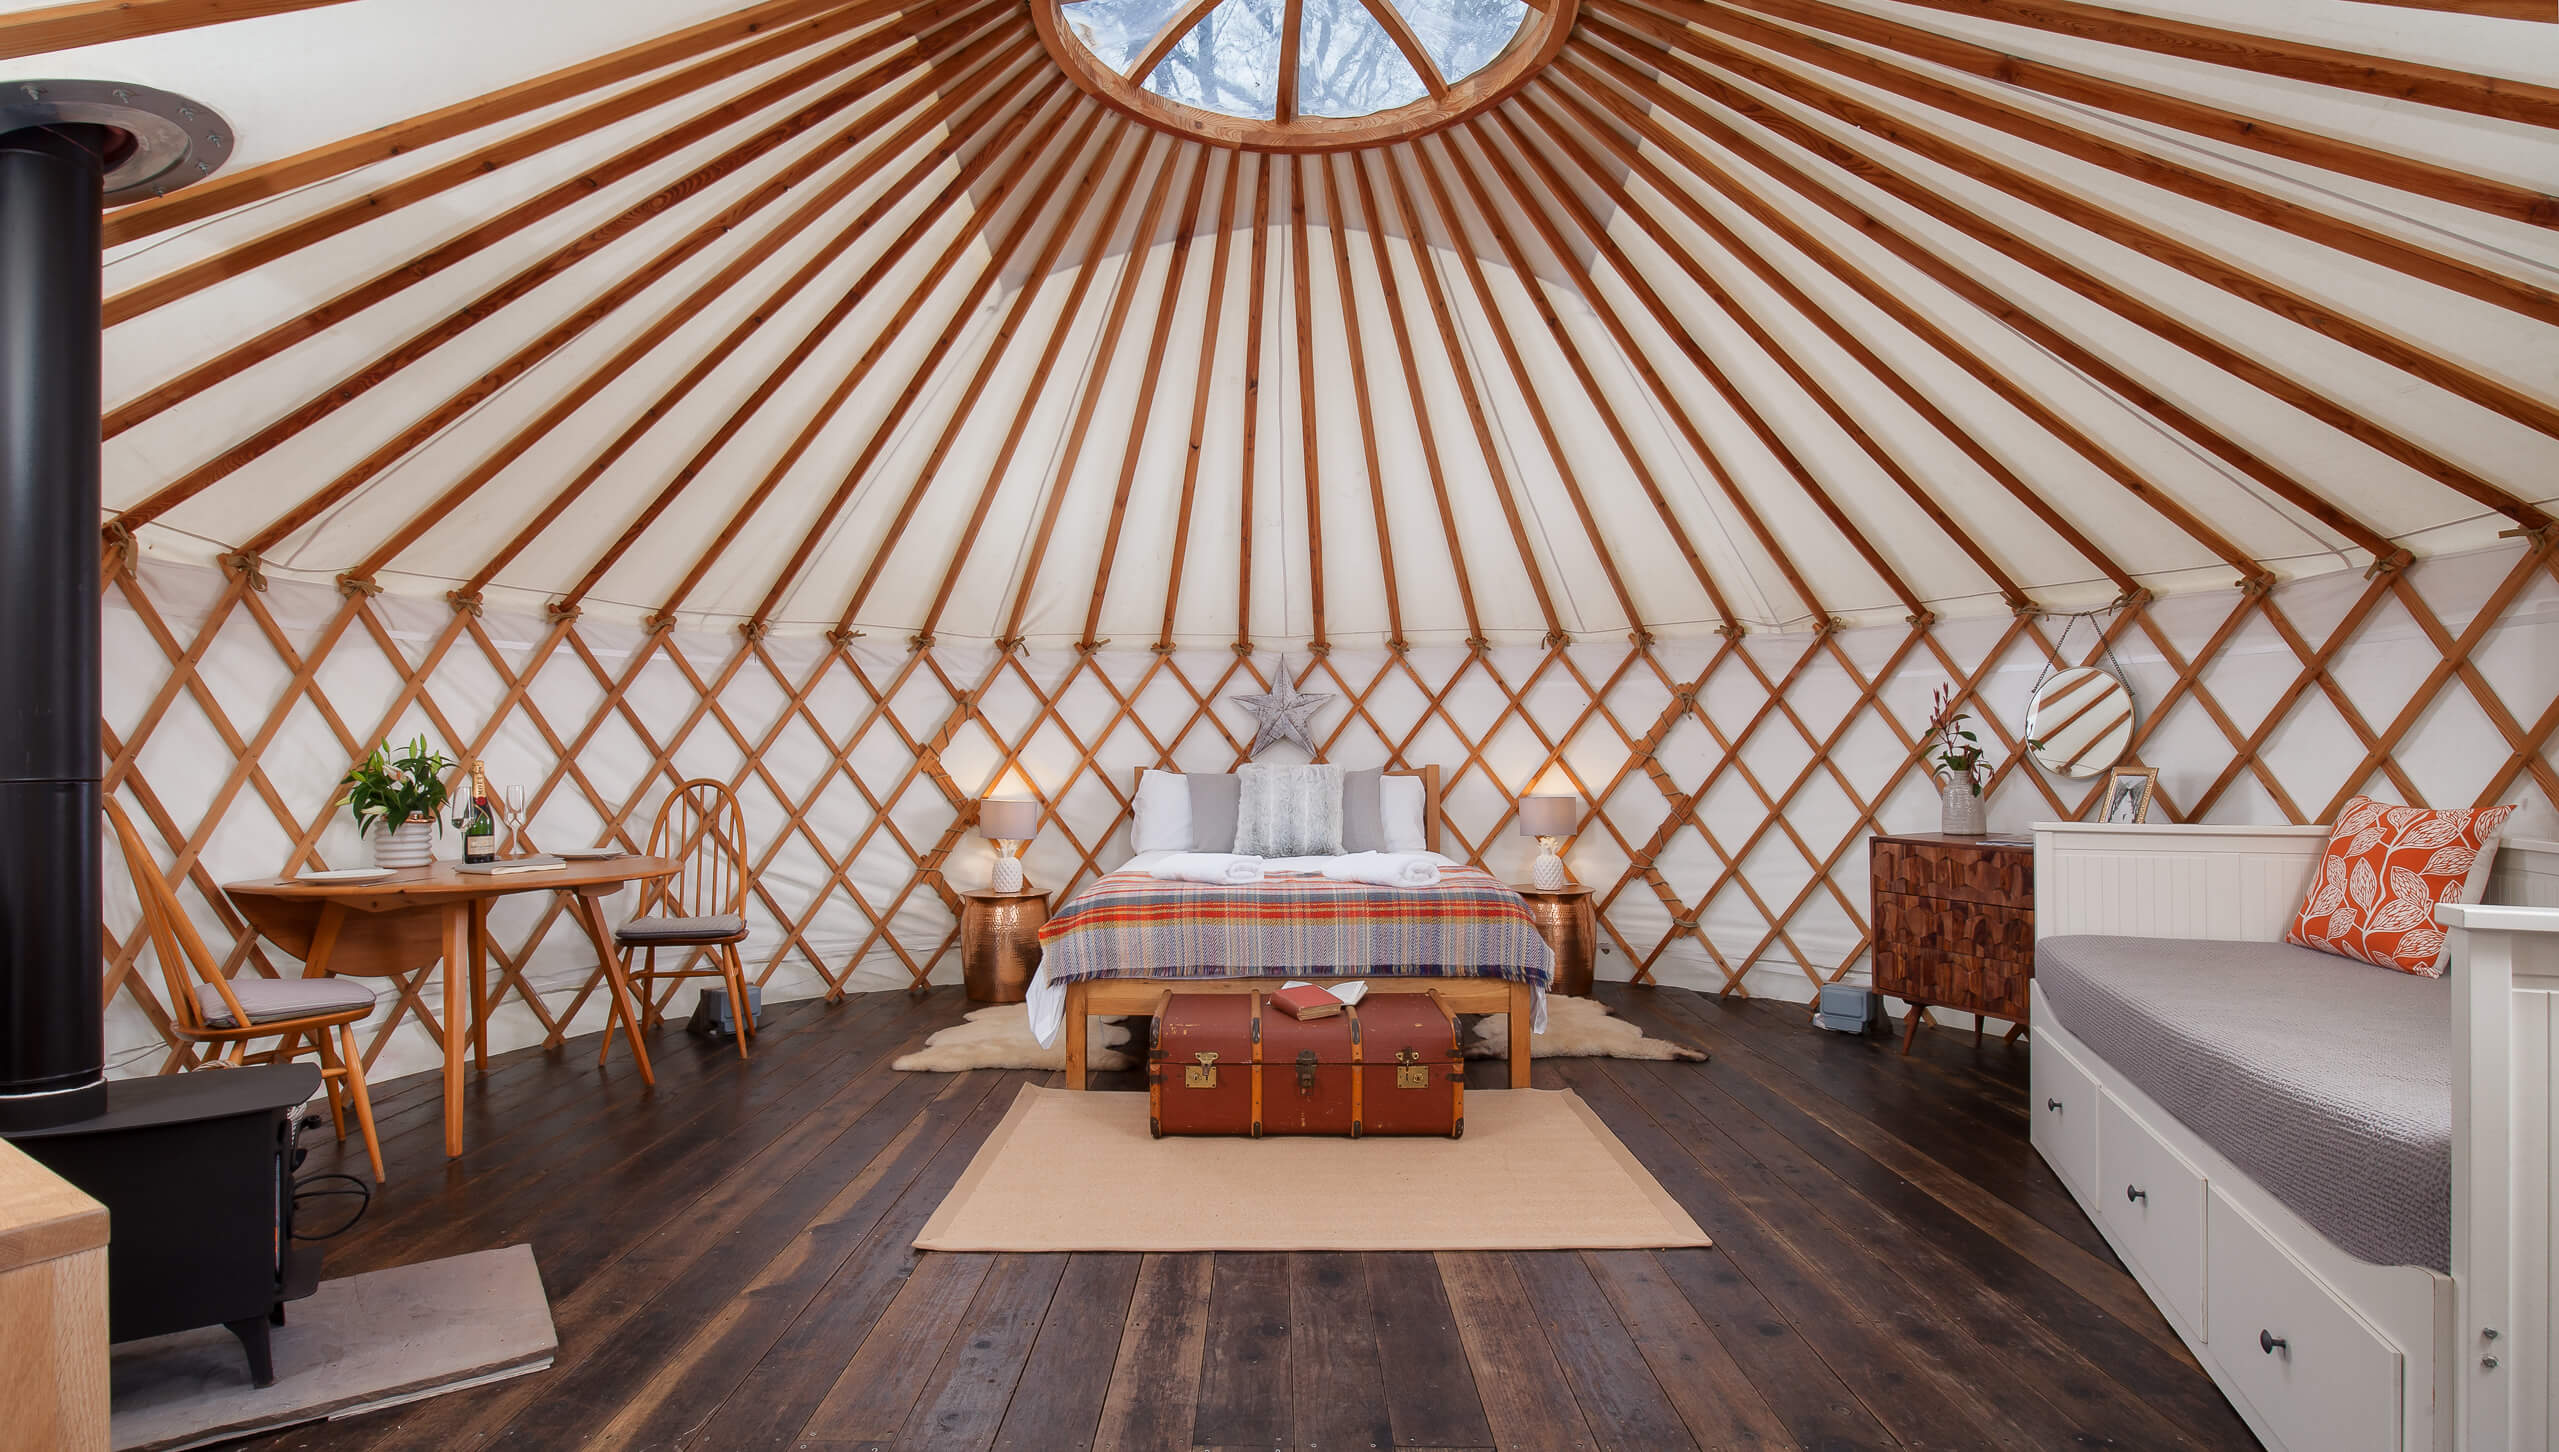 Larch Yurt The Yurt Retreat